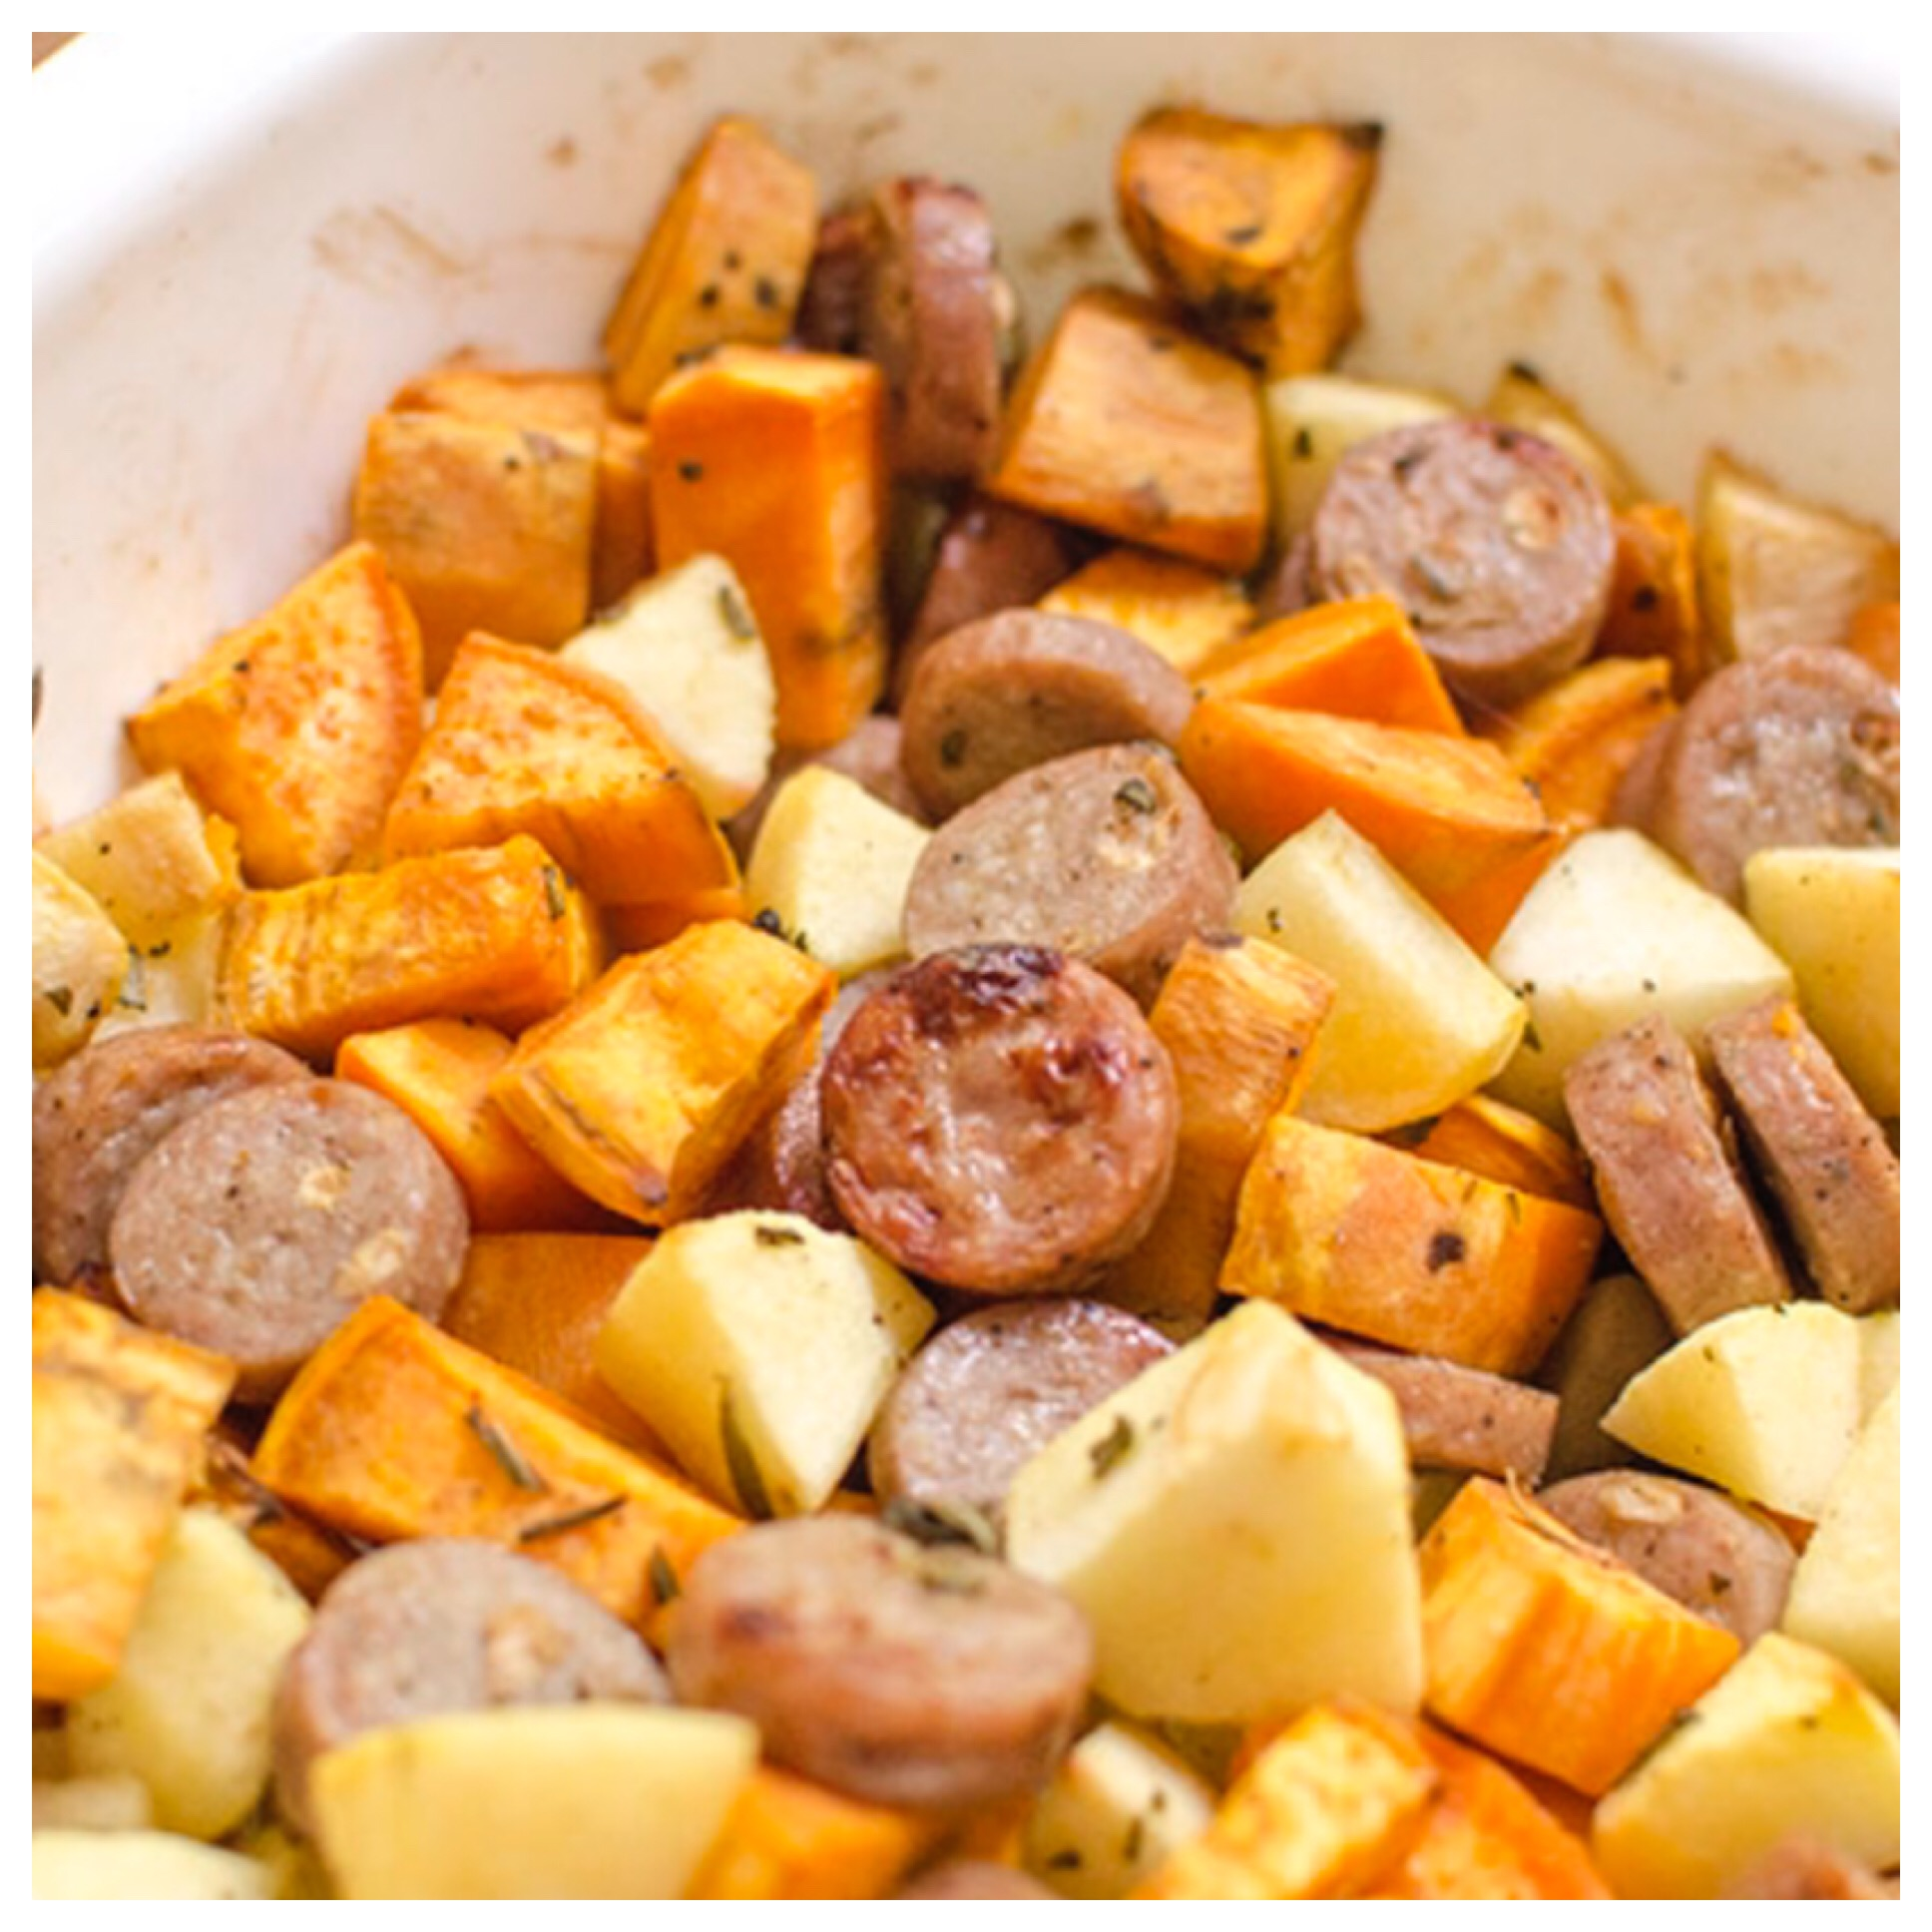 Not your usual cheesy, creamy casserole, but easy and satisfying all the same. Sweet potatoes and tart apples are chunked up and baked with chicken sausage and honey mustard.